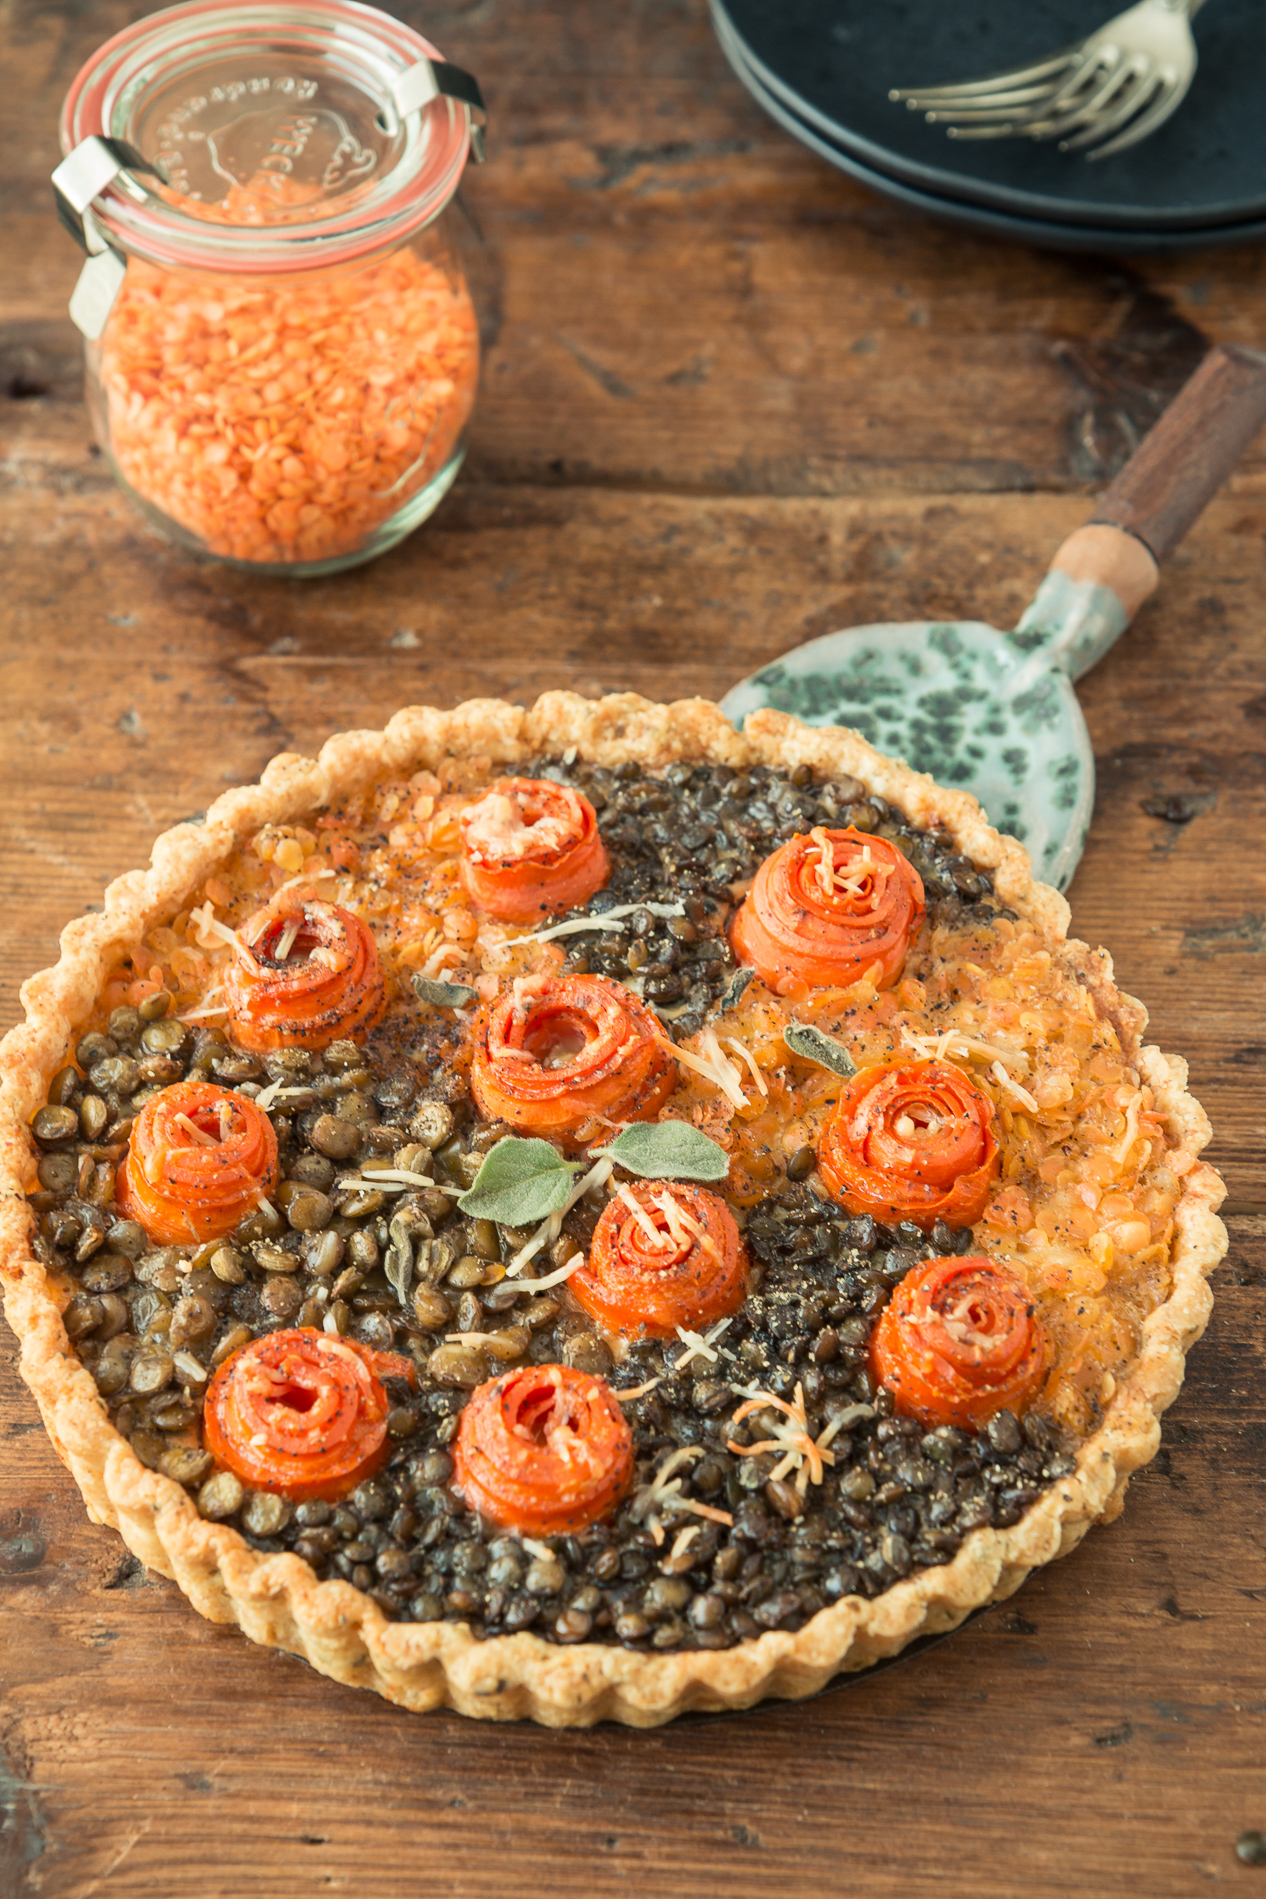 Lentil and Carrot Tart with Lentil Crust